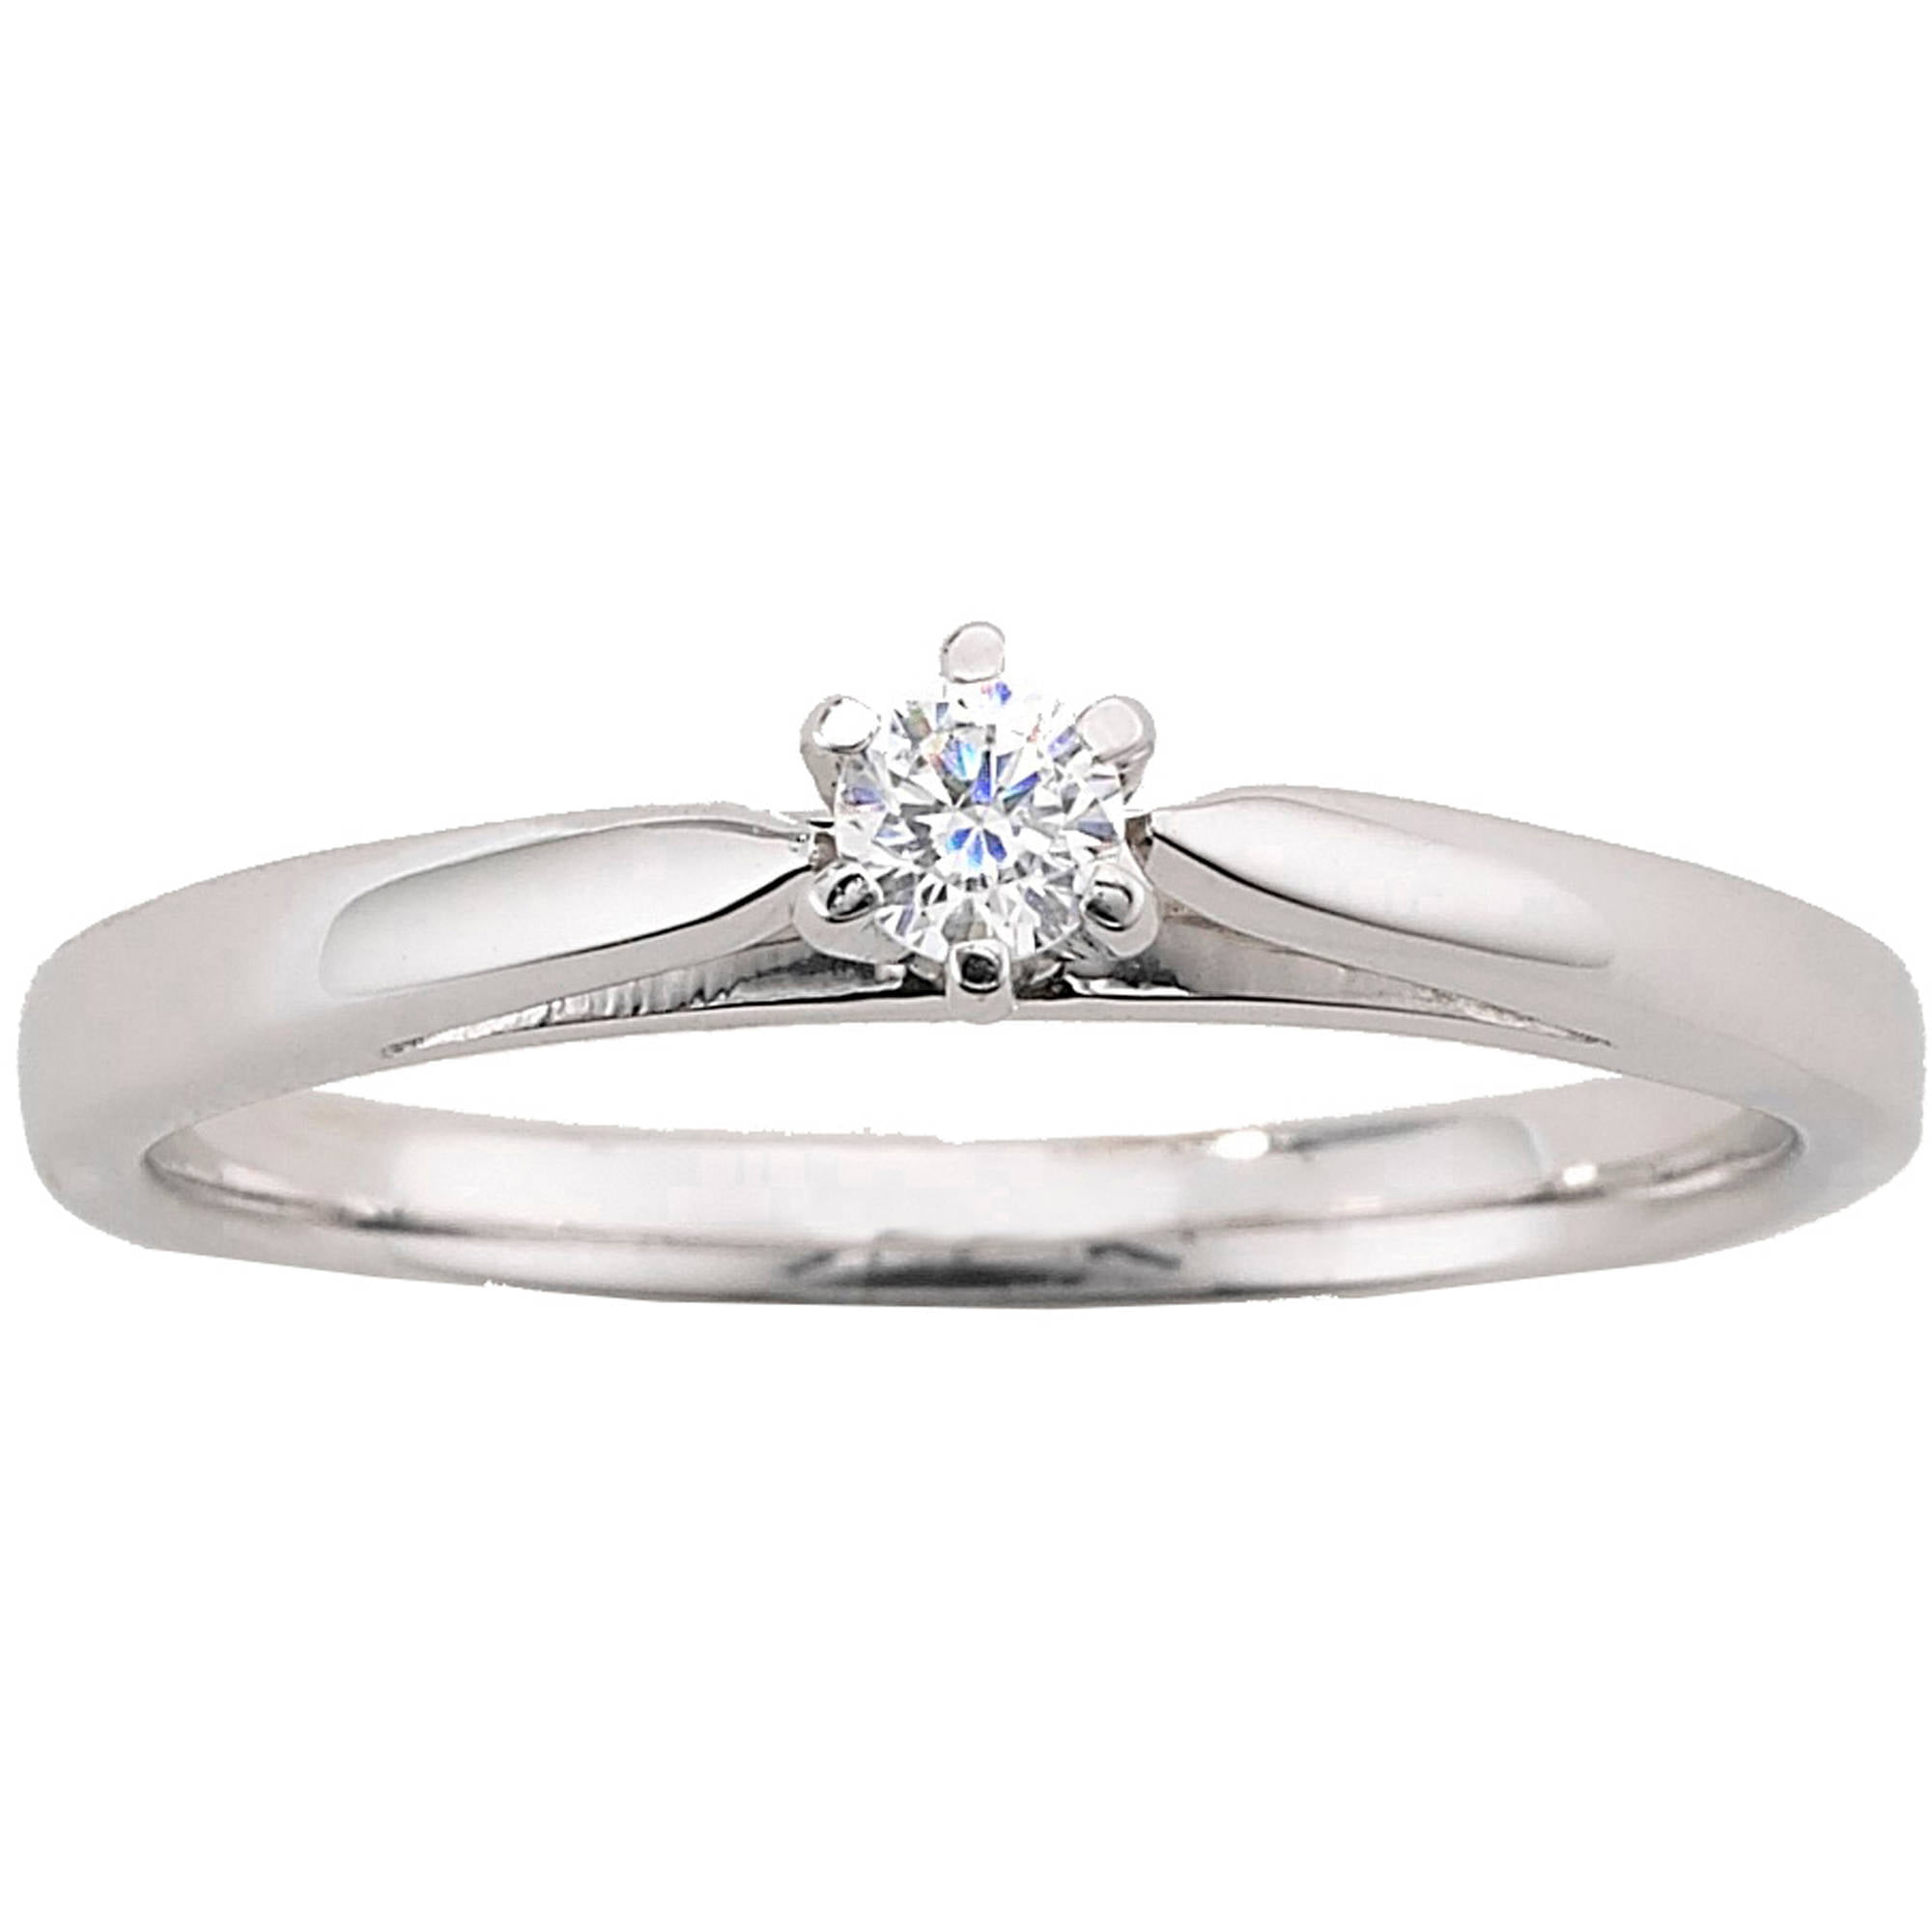 Engagement ring 1 carat diamond